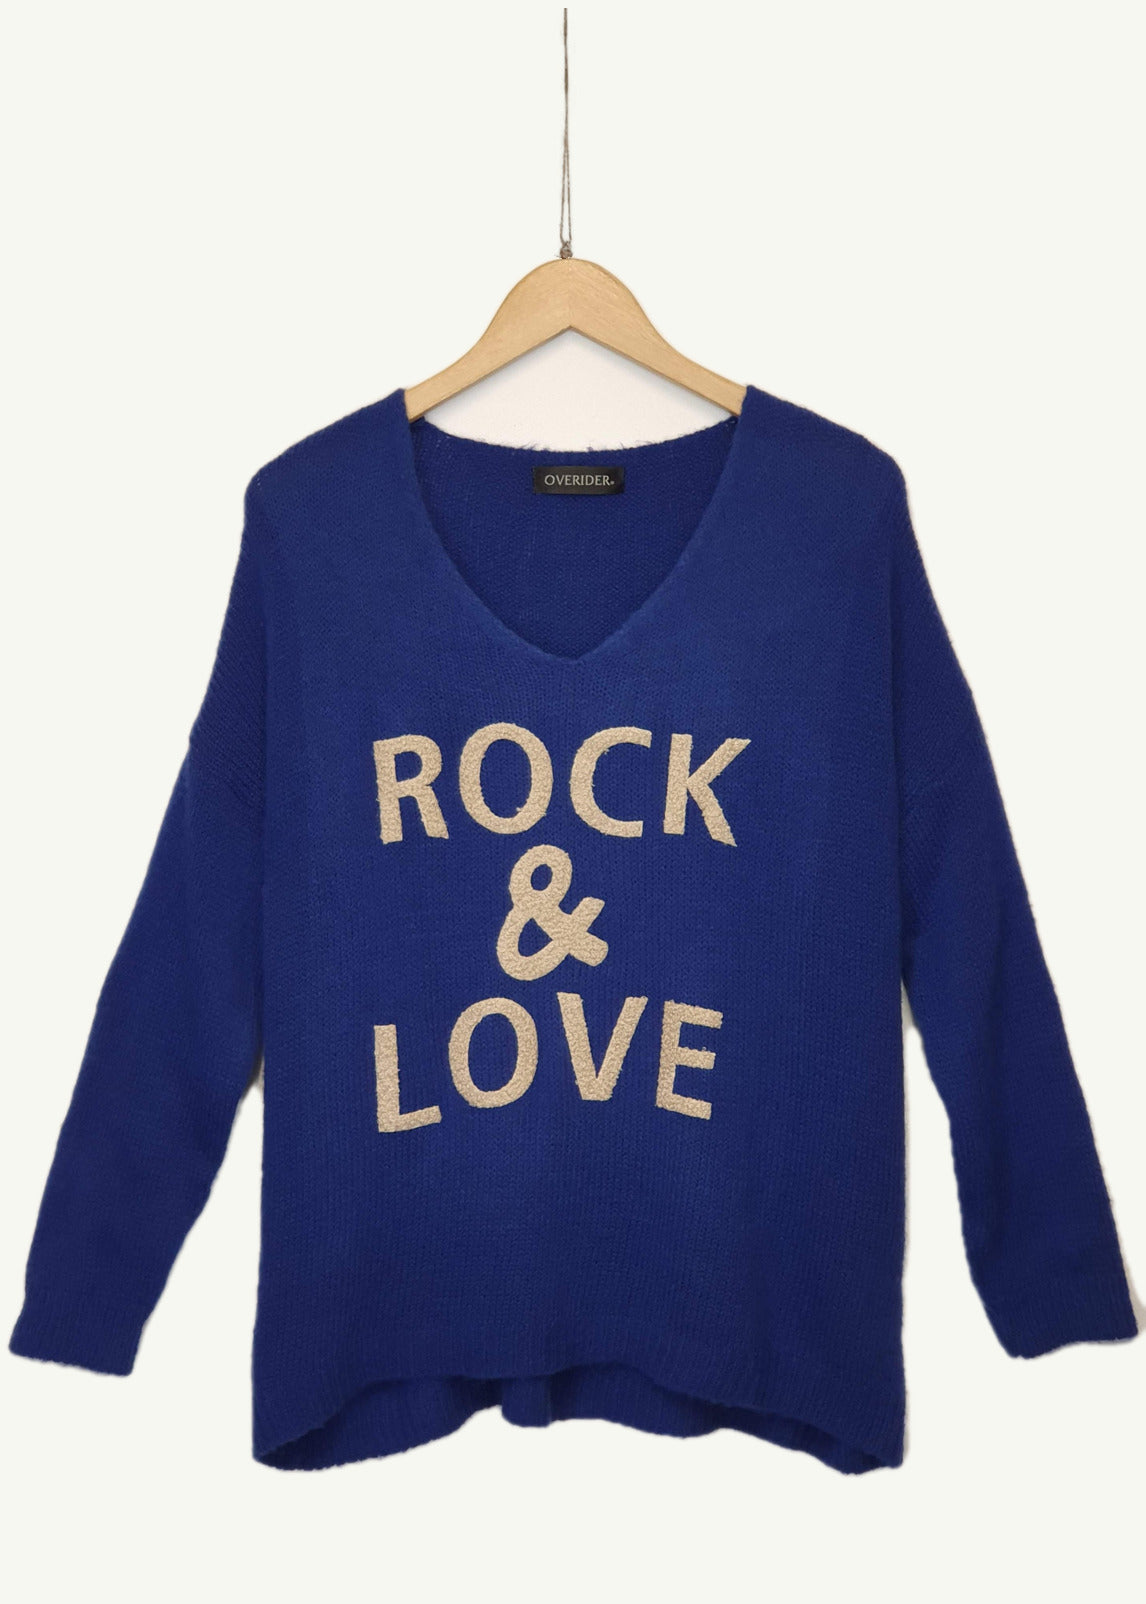 ROCK AND LOVE  - Knitted Jumper - Blue